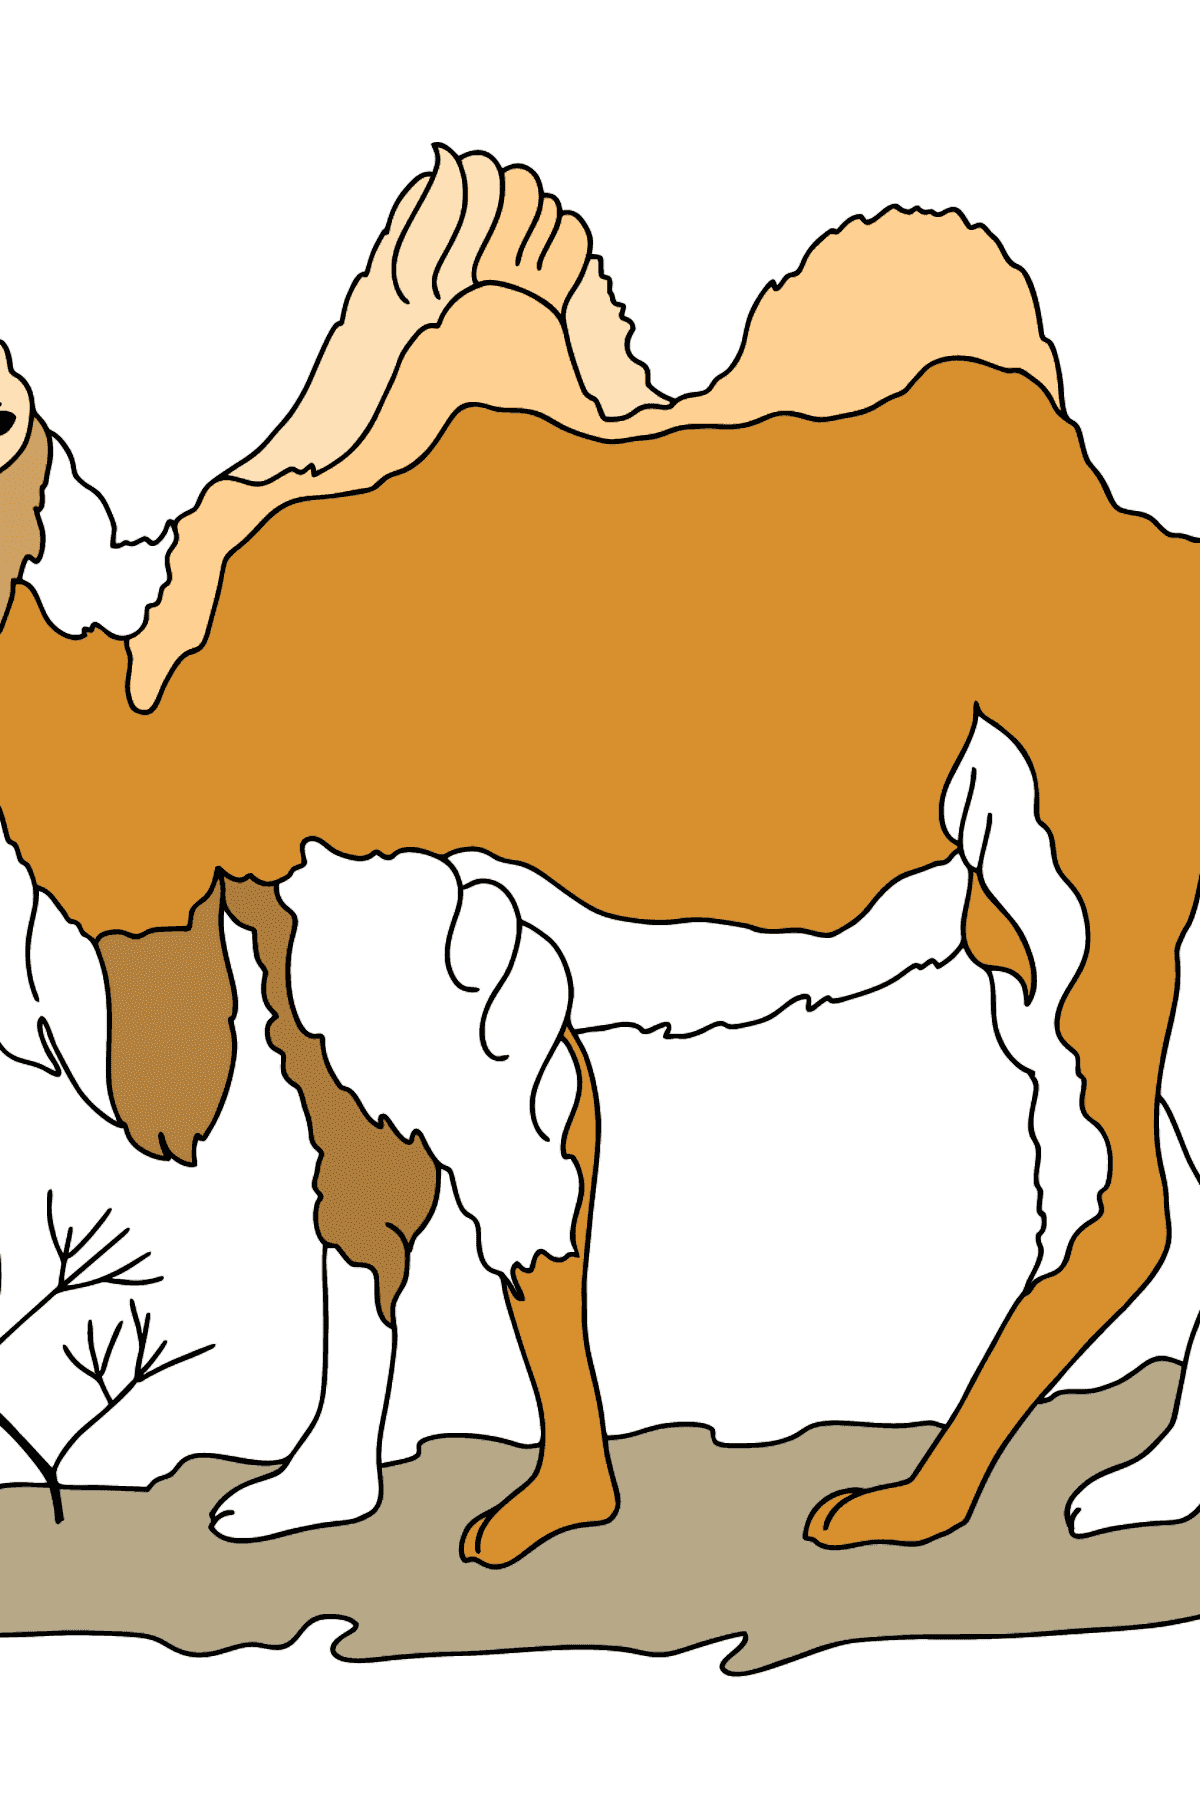 A Camel Coloring Page - Coloring Pages for Kids